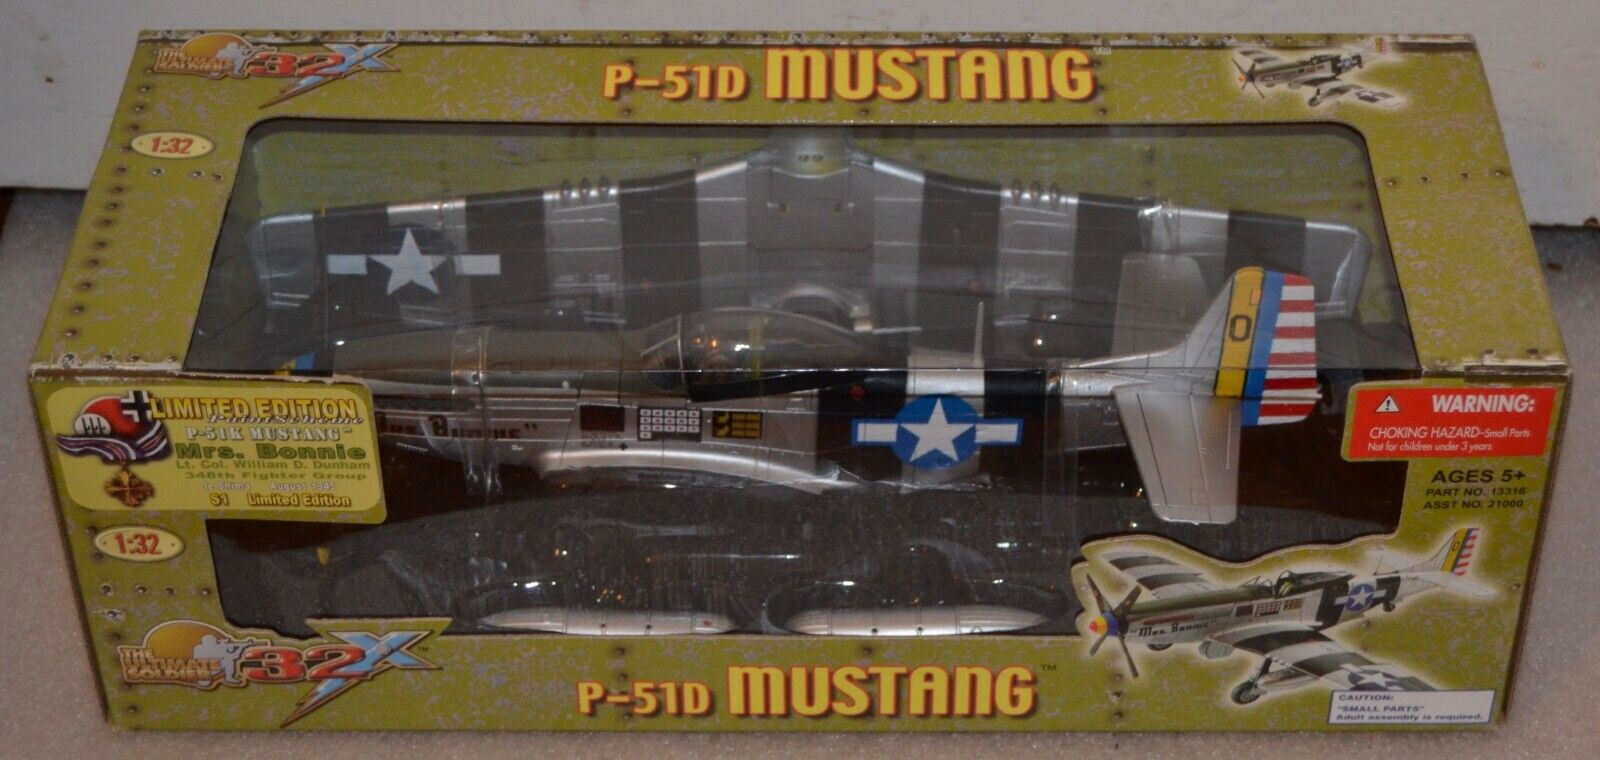 Ultimate Soldier 1 32 P-51D Mustang, Mme Bonnie, No. 21000 13316